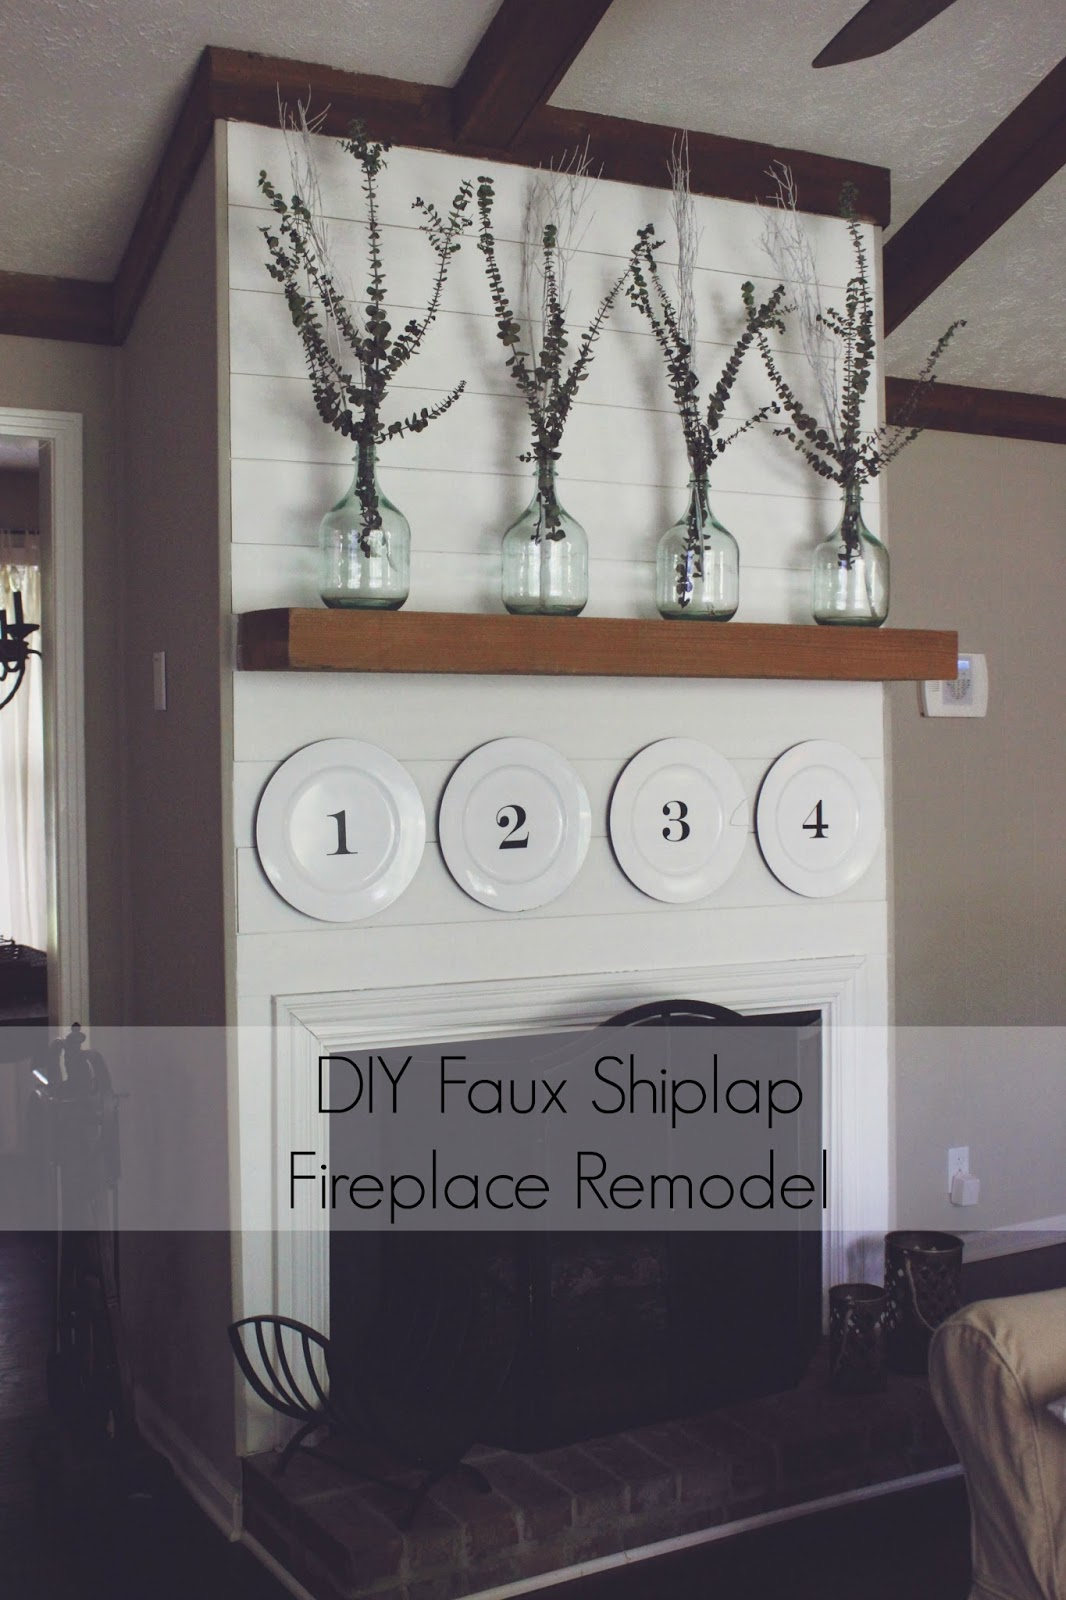 Some Kind Of Wonderful Diy Faux Shiplap Fireplace Remodel